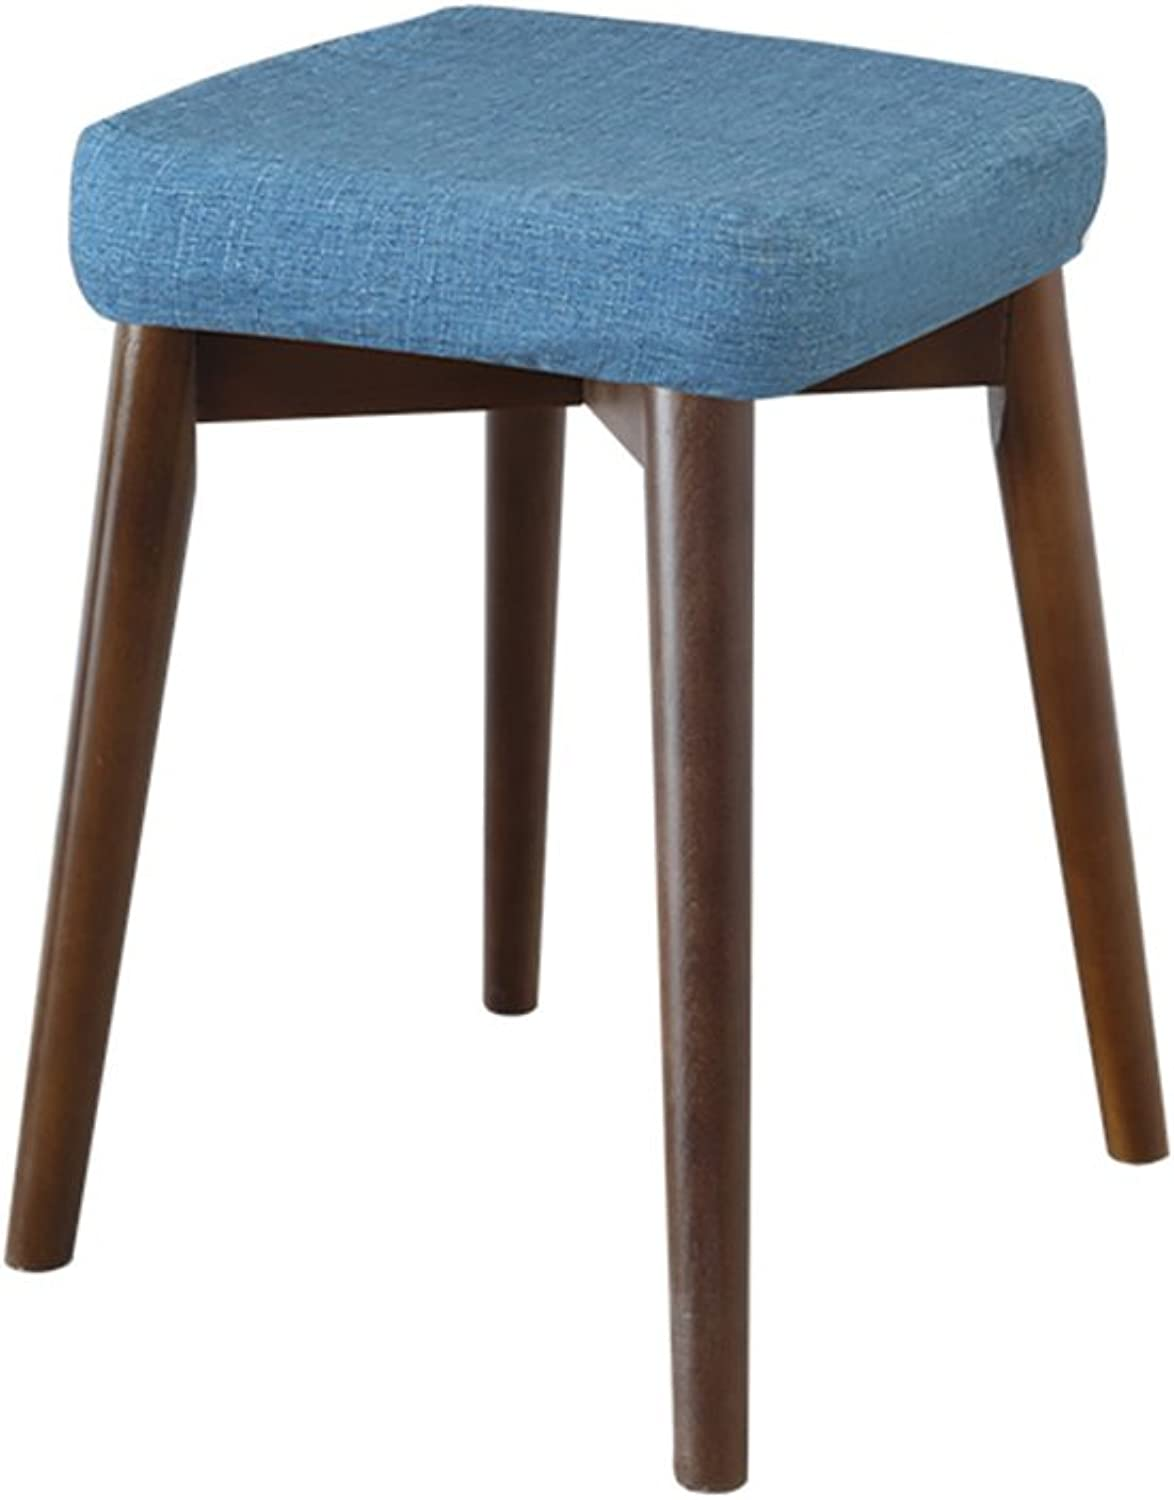 Small Square Stool Cloth Sponge Washable 37  37  45cm Strong Bearing Easy to Assemble High Stool (color   bluee, Size   A)